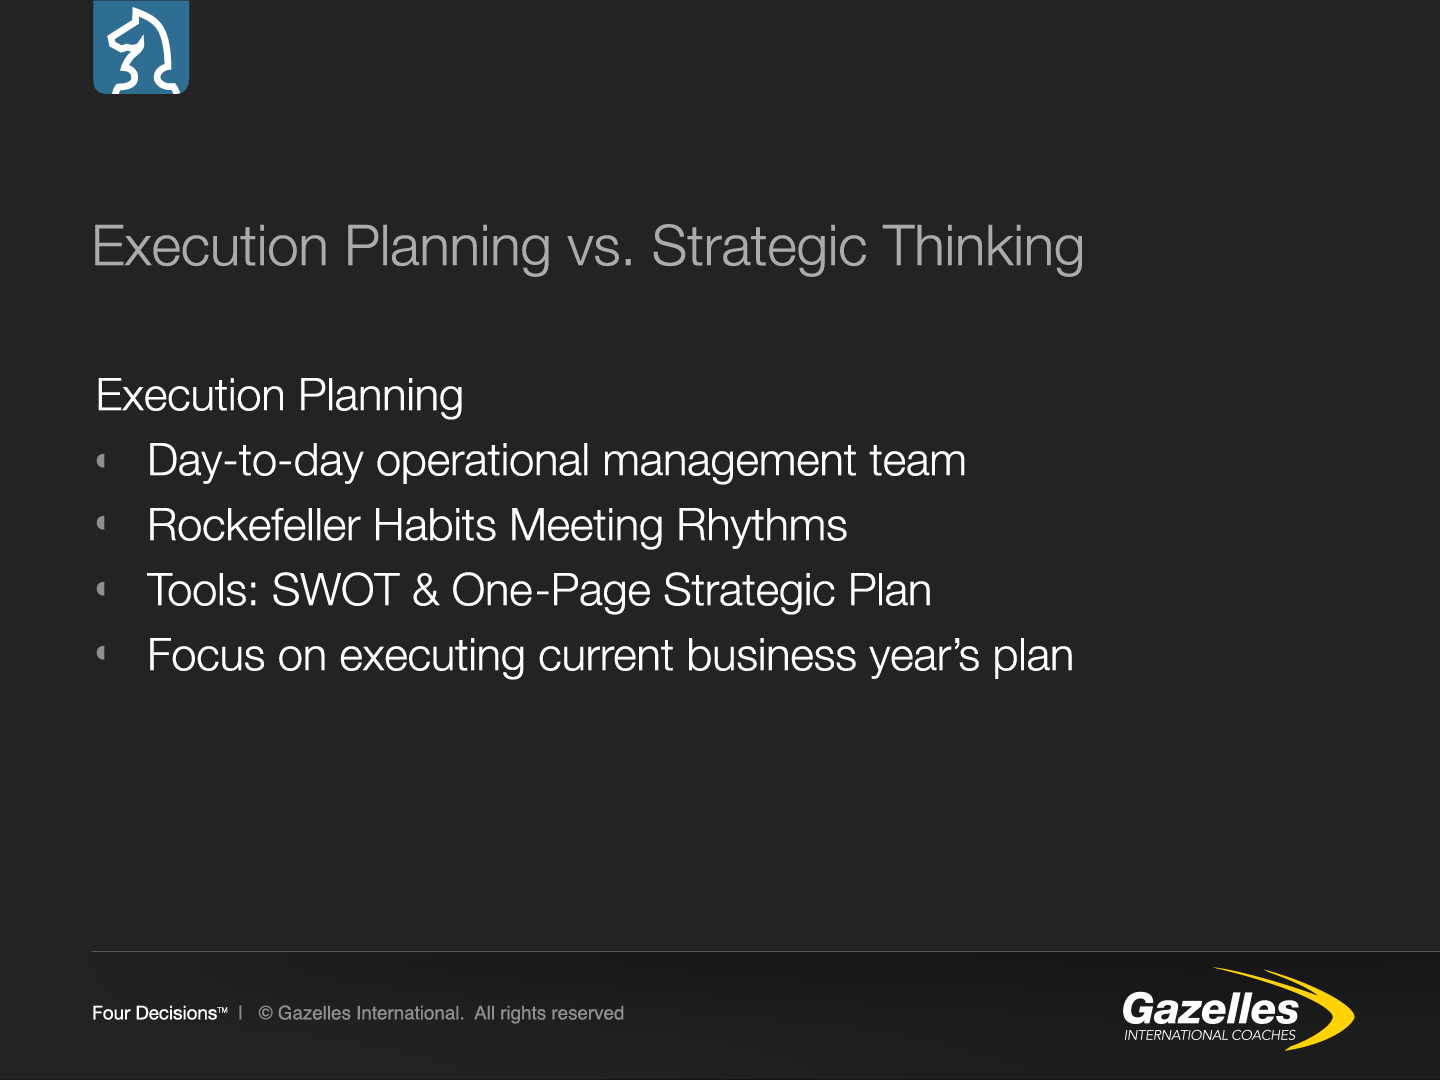 Execution Planning vs. Strategic Thinking.png